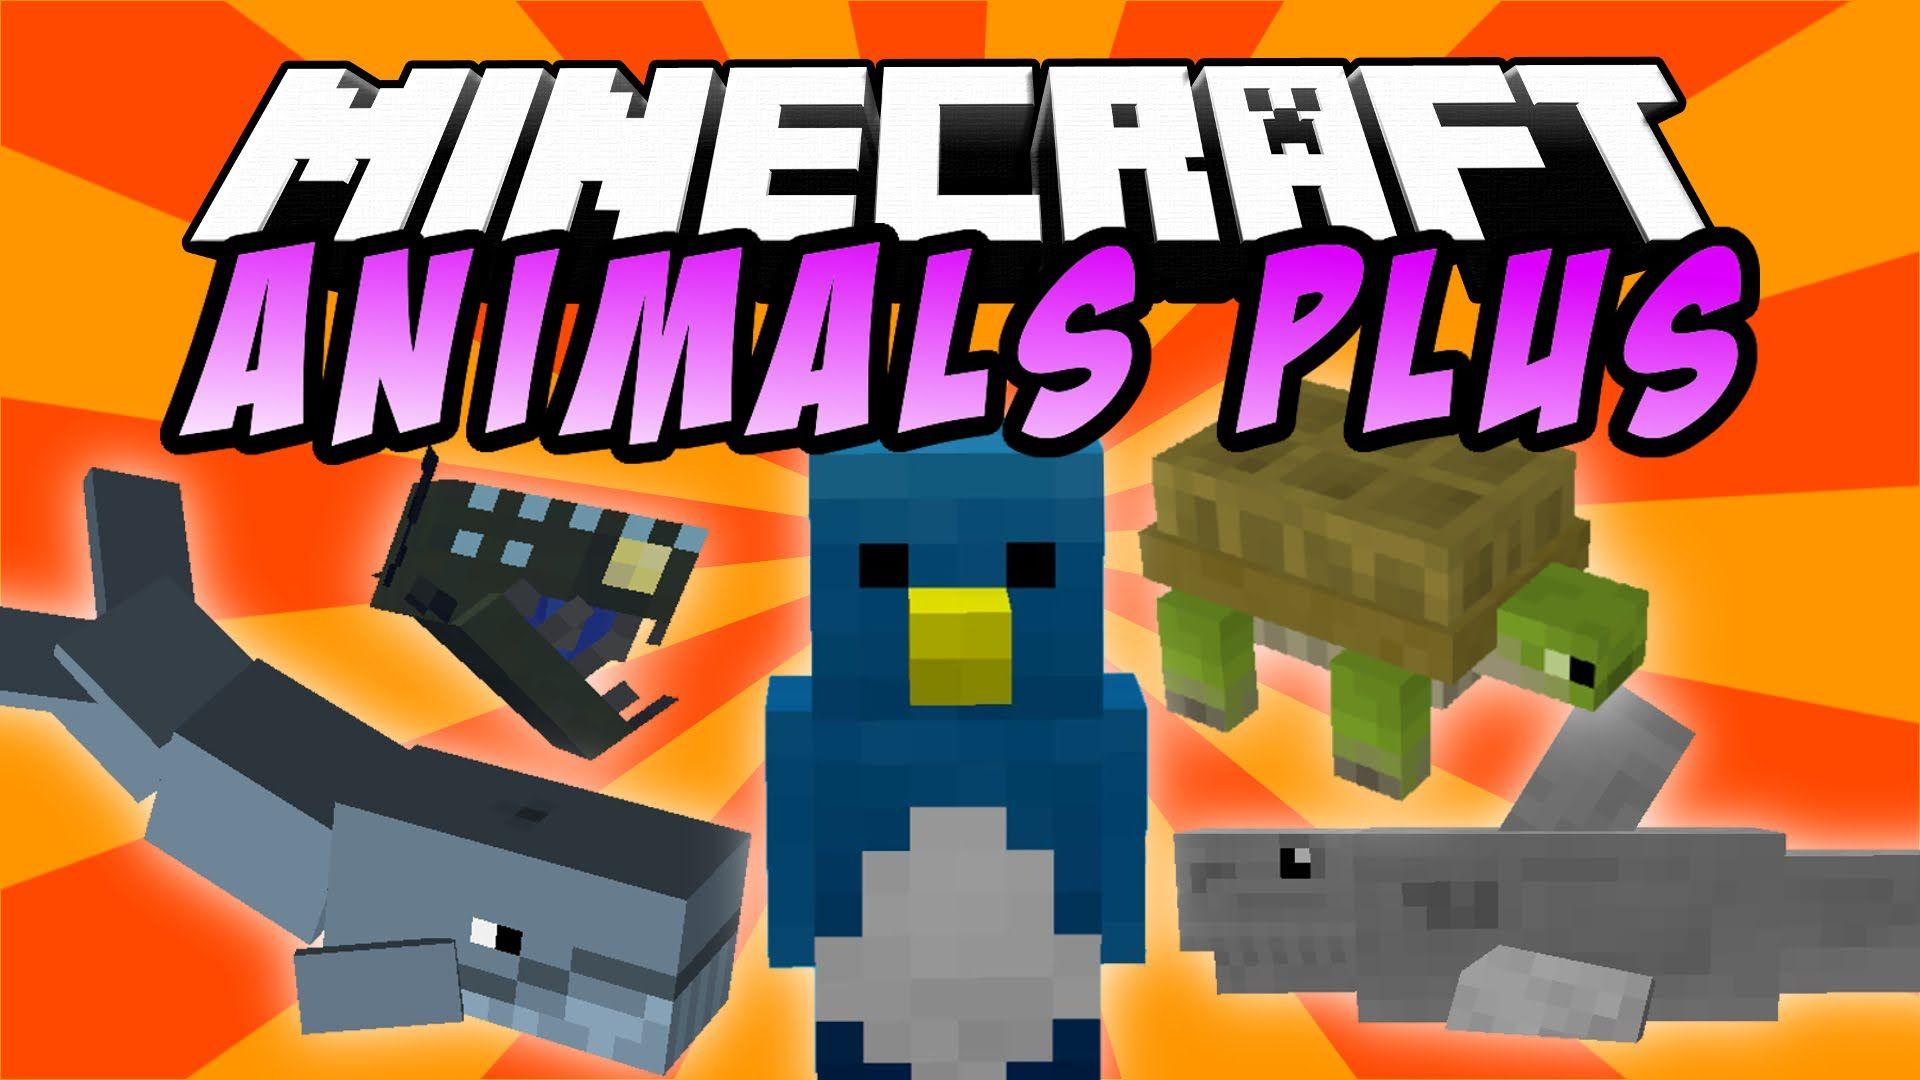 Minecraft Kitchen Mod 1.8 Animals Plus Mod For Minecraft 1 8 1 7 10 1 6 4 Minecraft